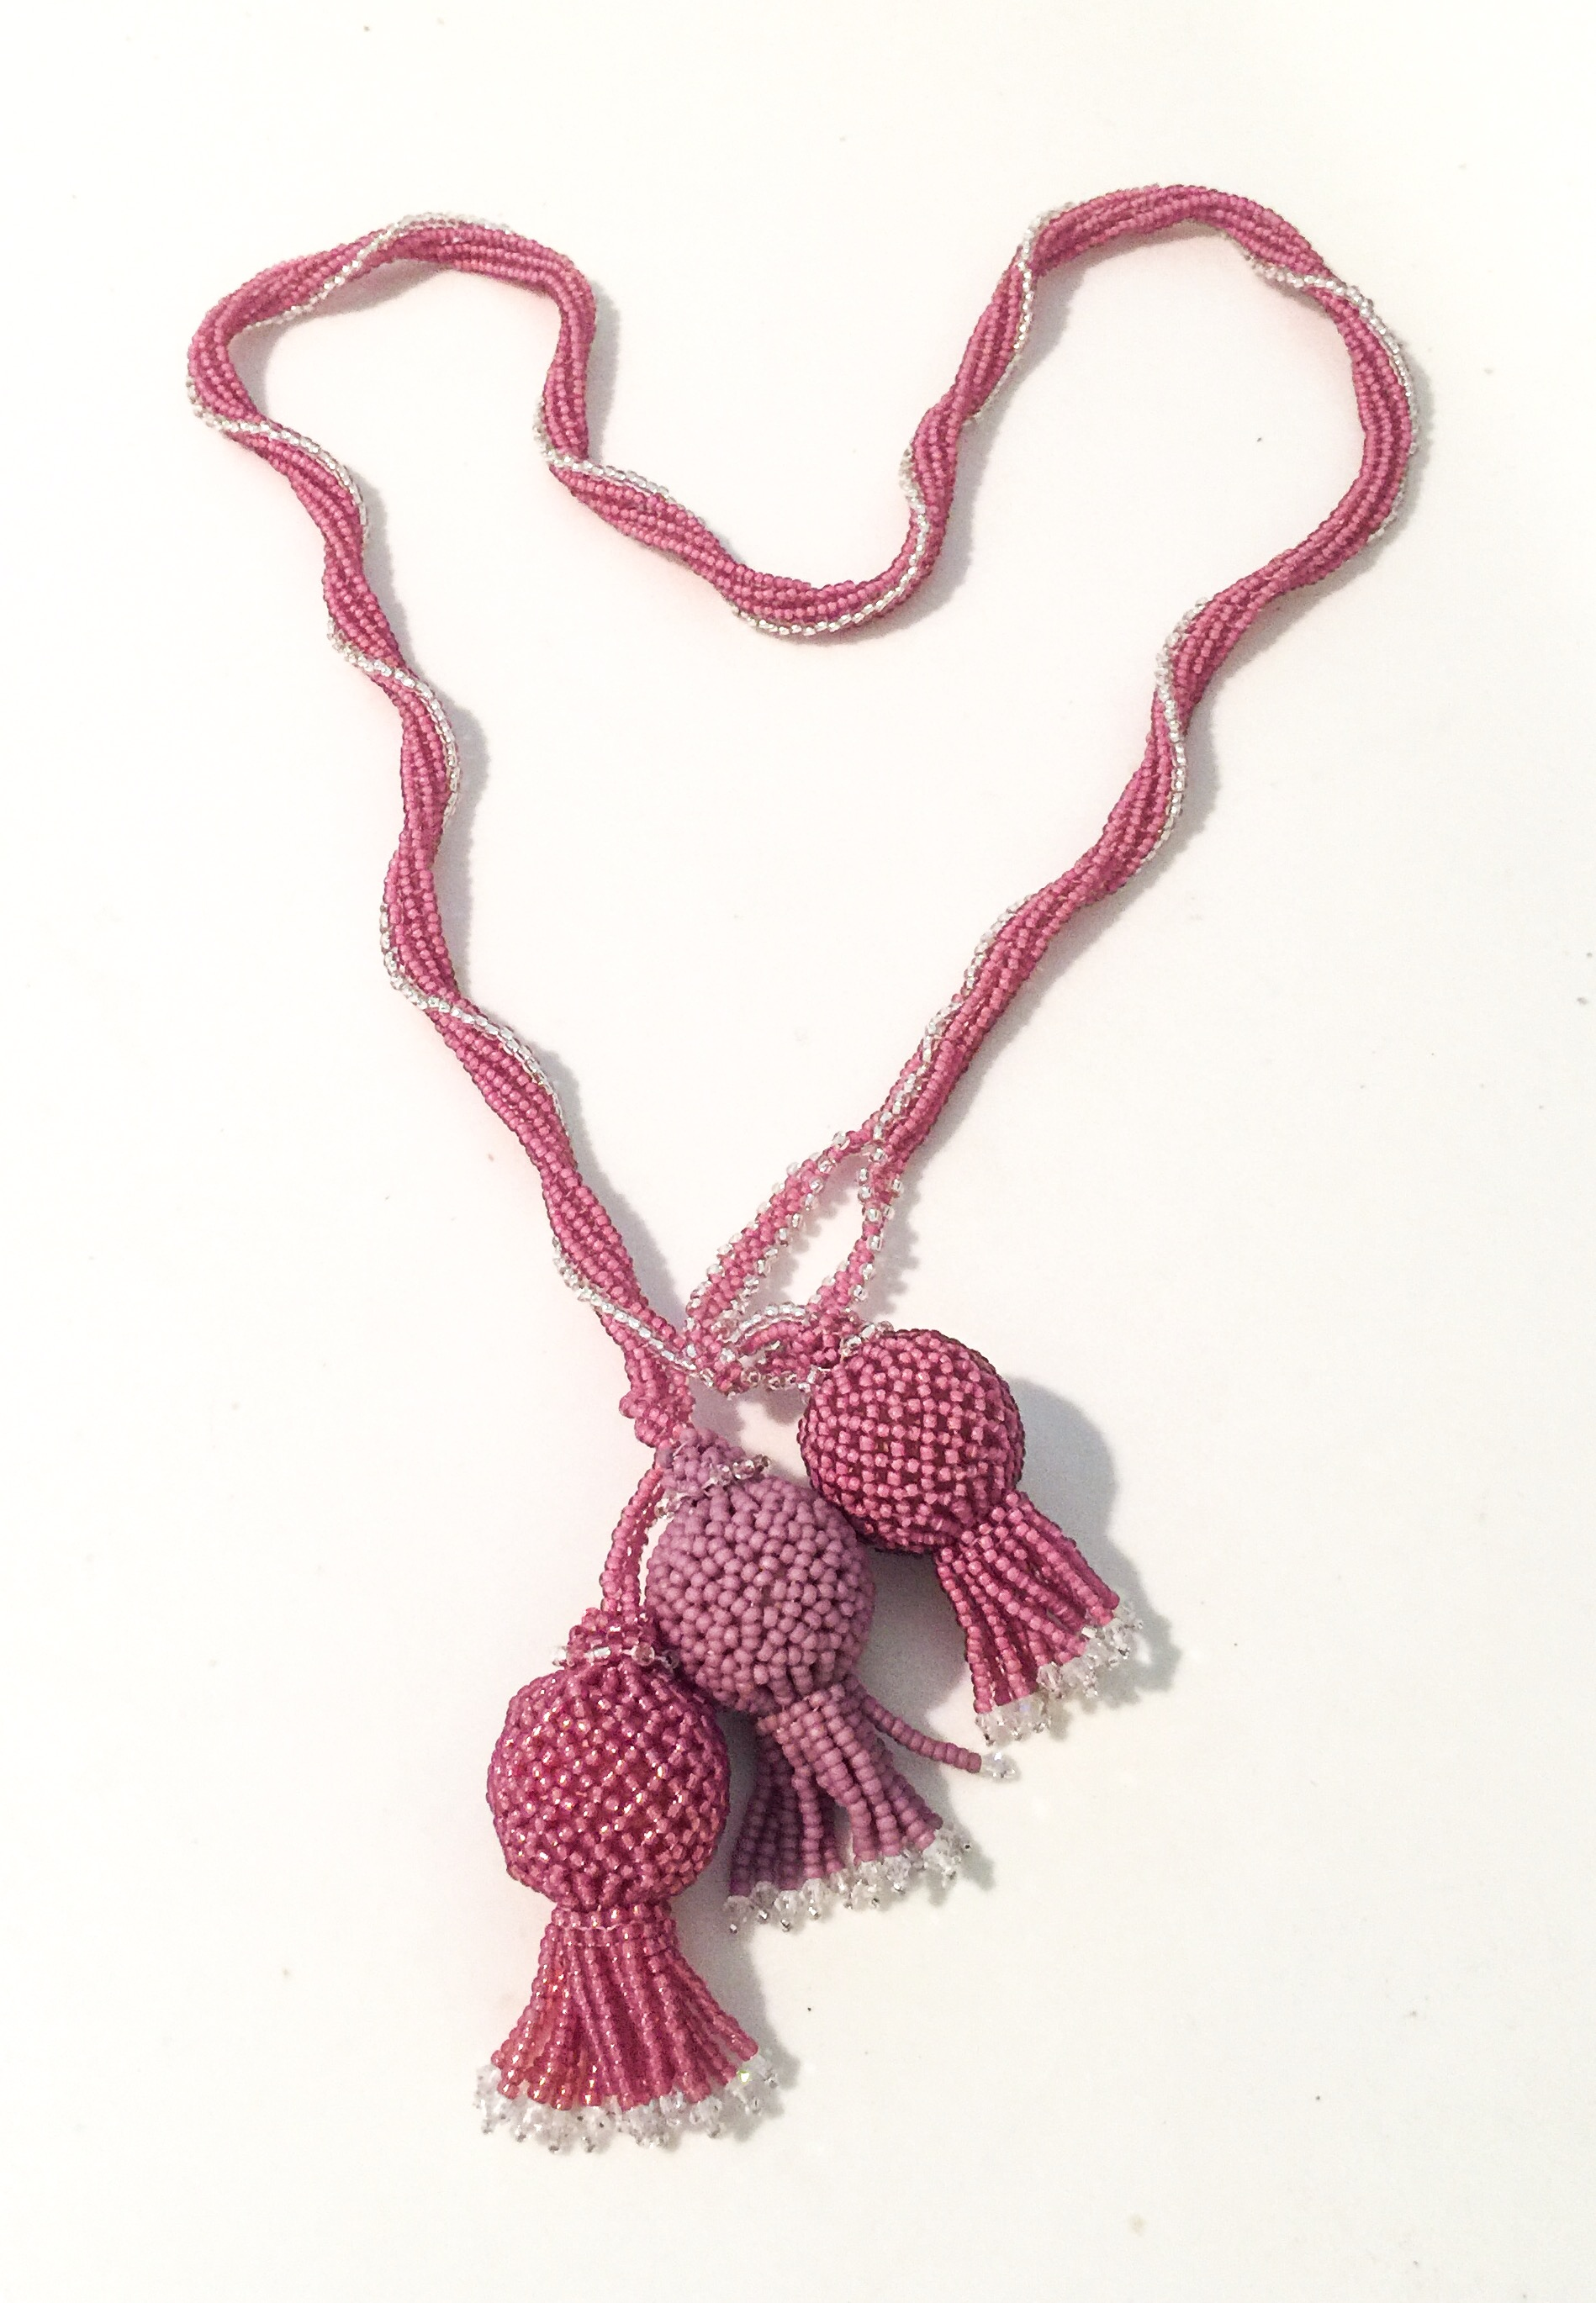 Thistle_Necklace